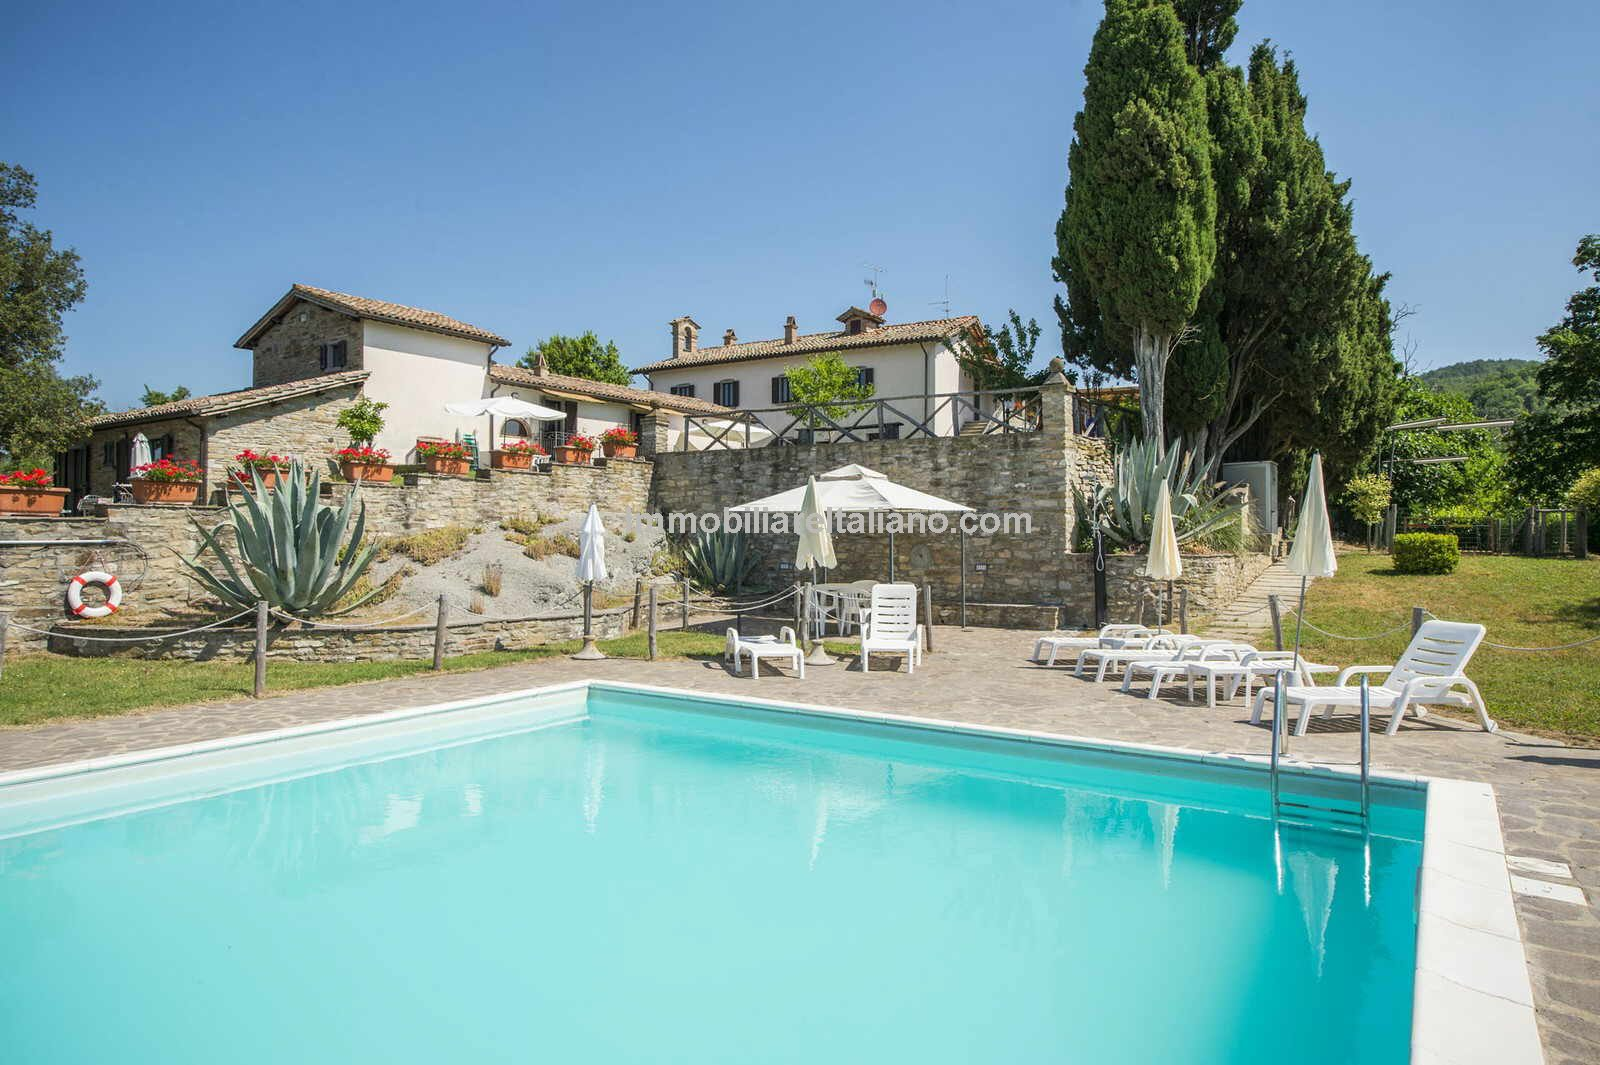 Umbria estate holiday accommodation business for sale